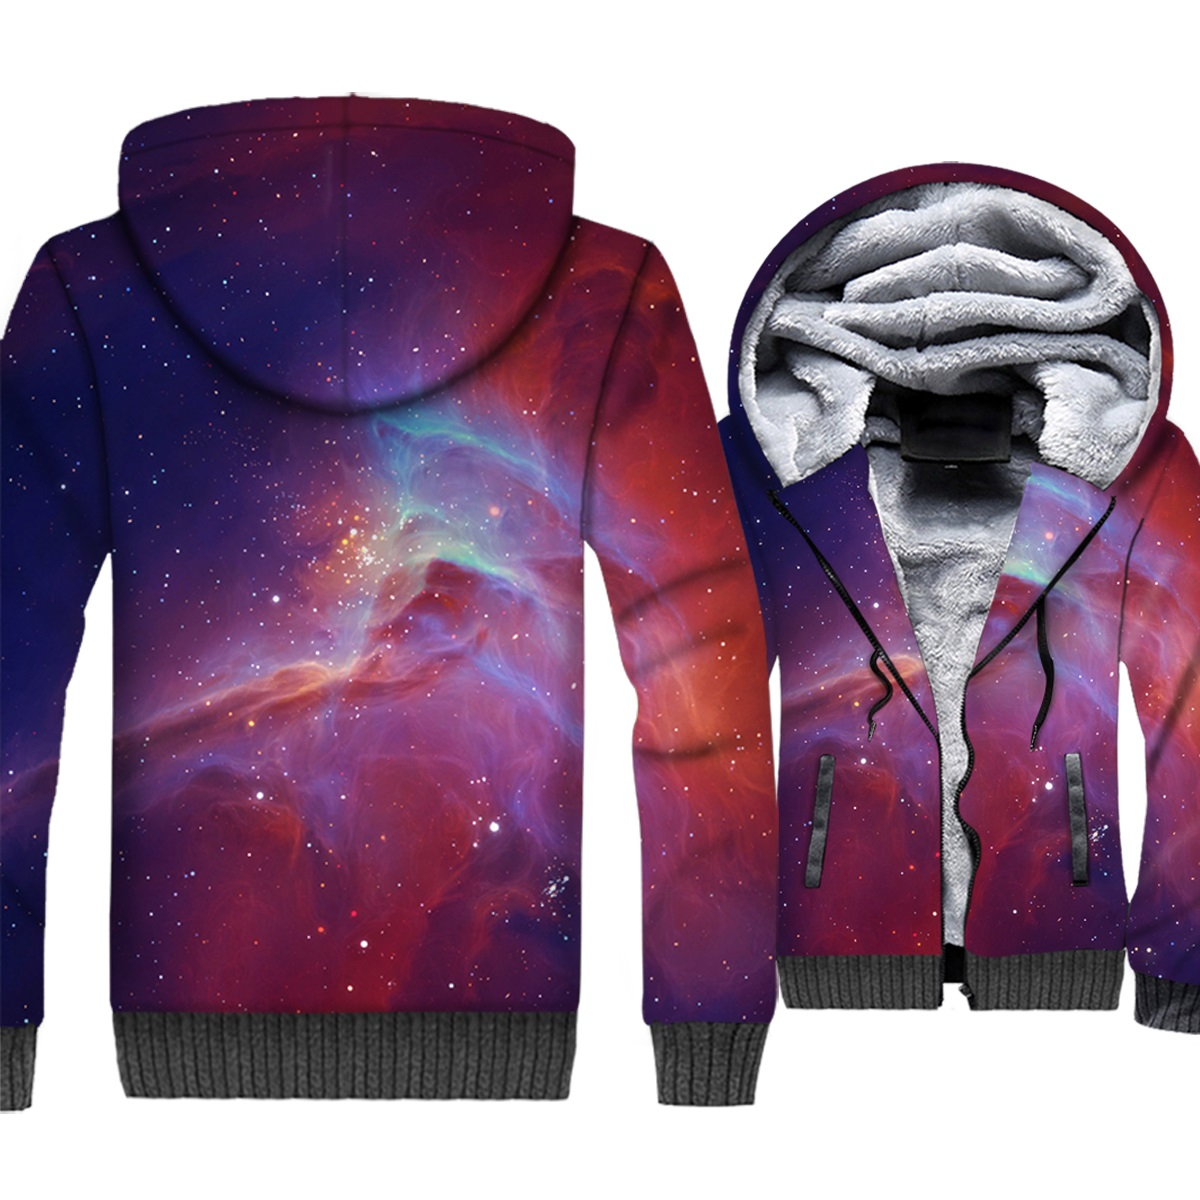 Colorful Nebula Jacket Men Space Galaxy 3D Hoodie Cap Sweatshirt 2018 New Winter Fleece Zipper Universe Stars Nightfall Coat 5XL